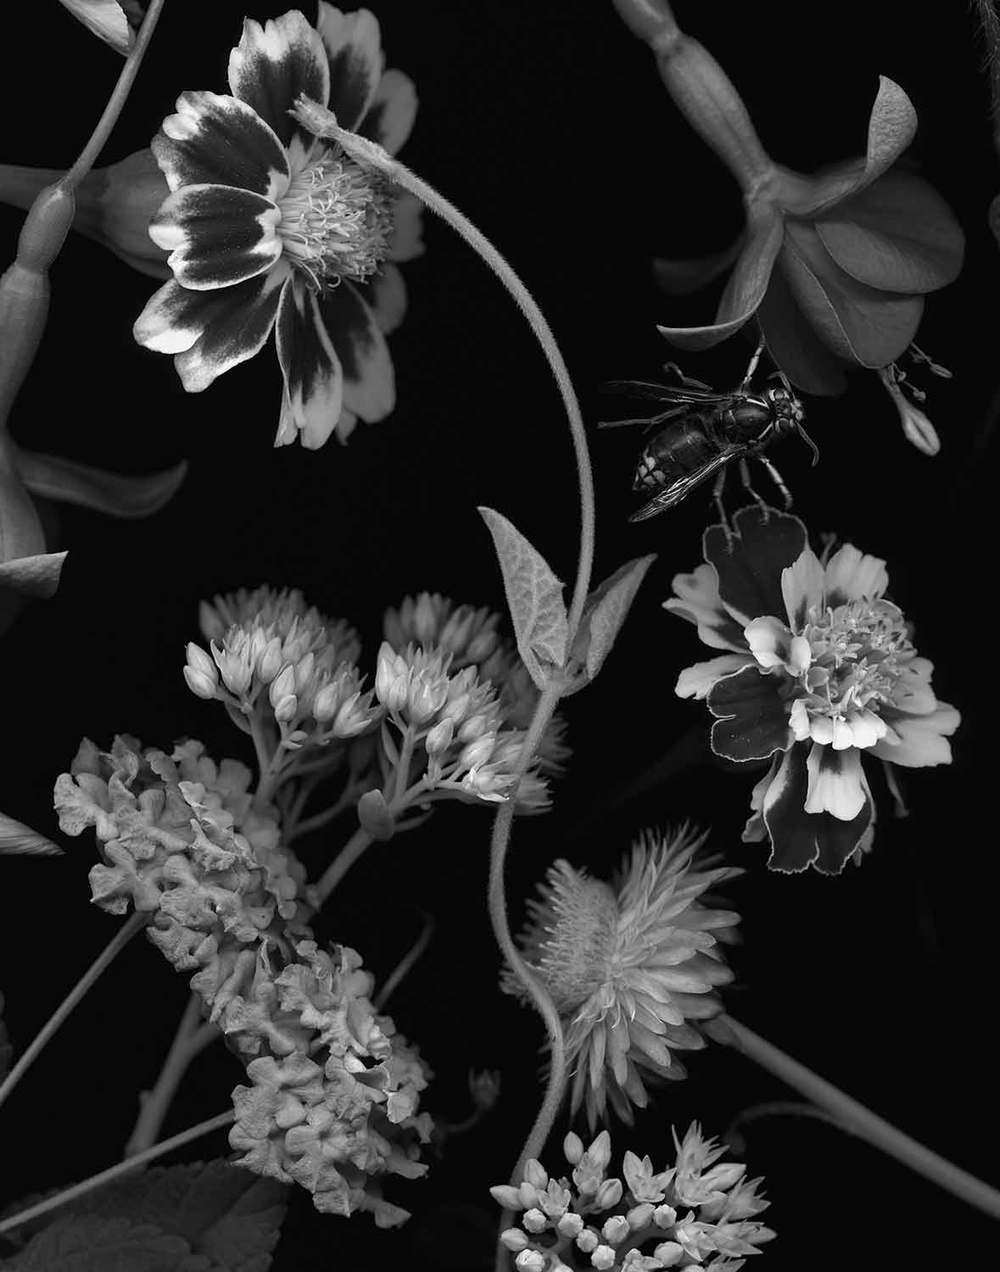 """Wasp and Marigolds, 2014. 11""""x14"""", archival pigment print. Edition of 20. At Camerawork Gallery."""